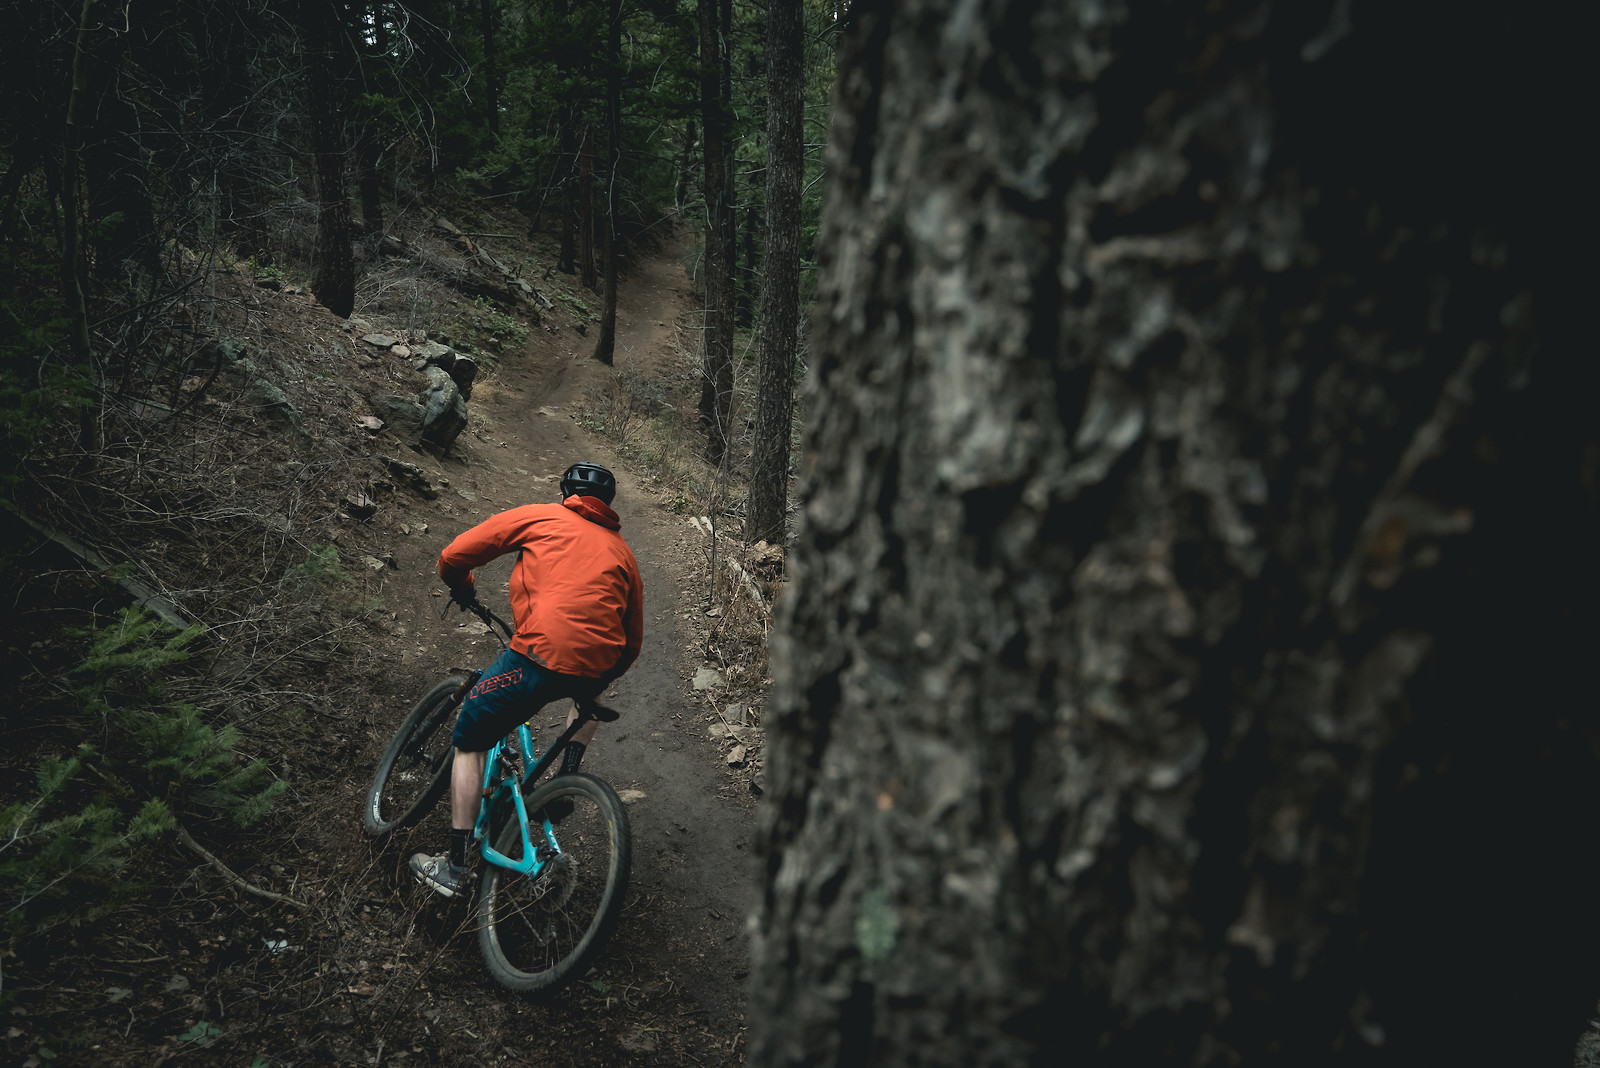 Solo Springtime Singletrack - russellpj - Mountain Biking Pictures - Vital MTB